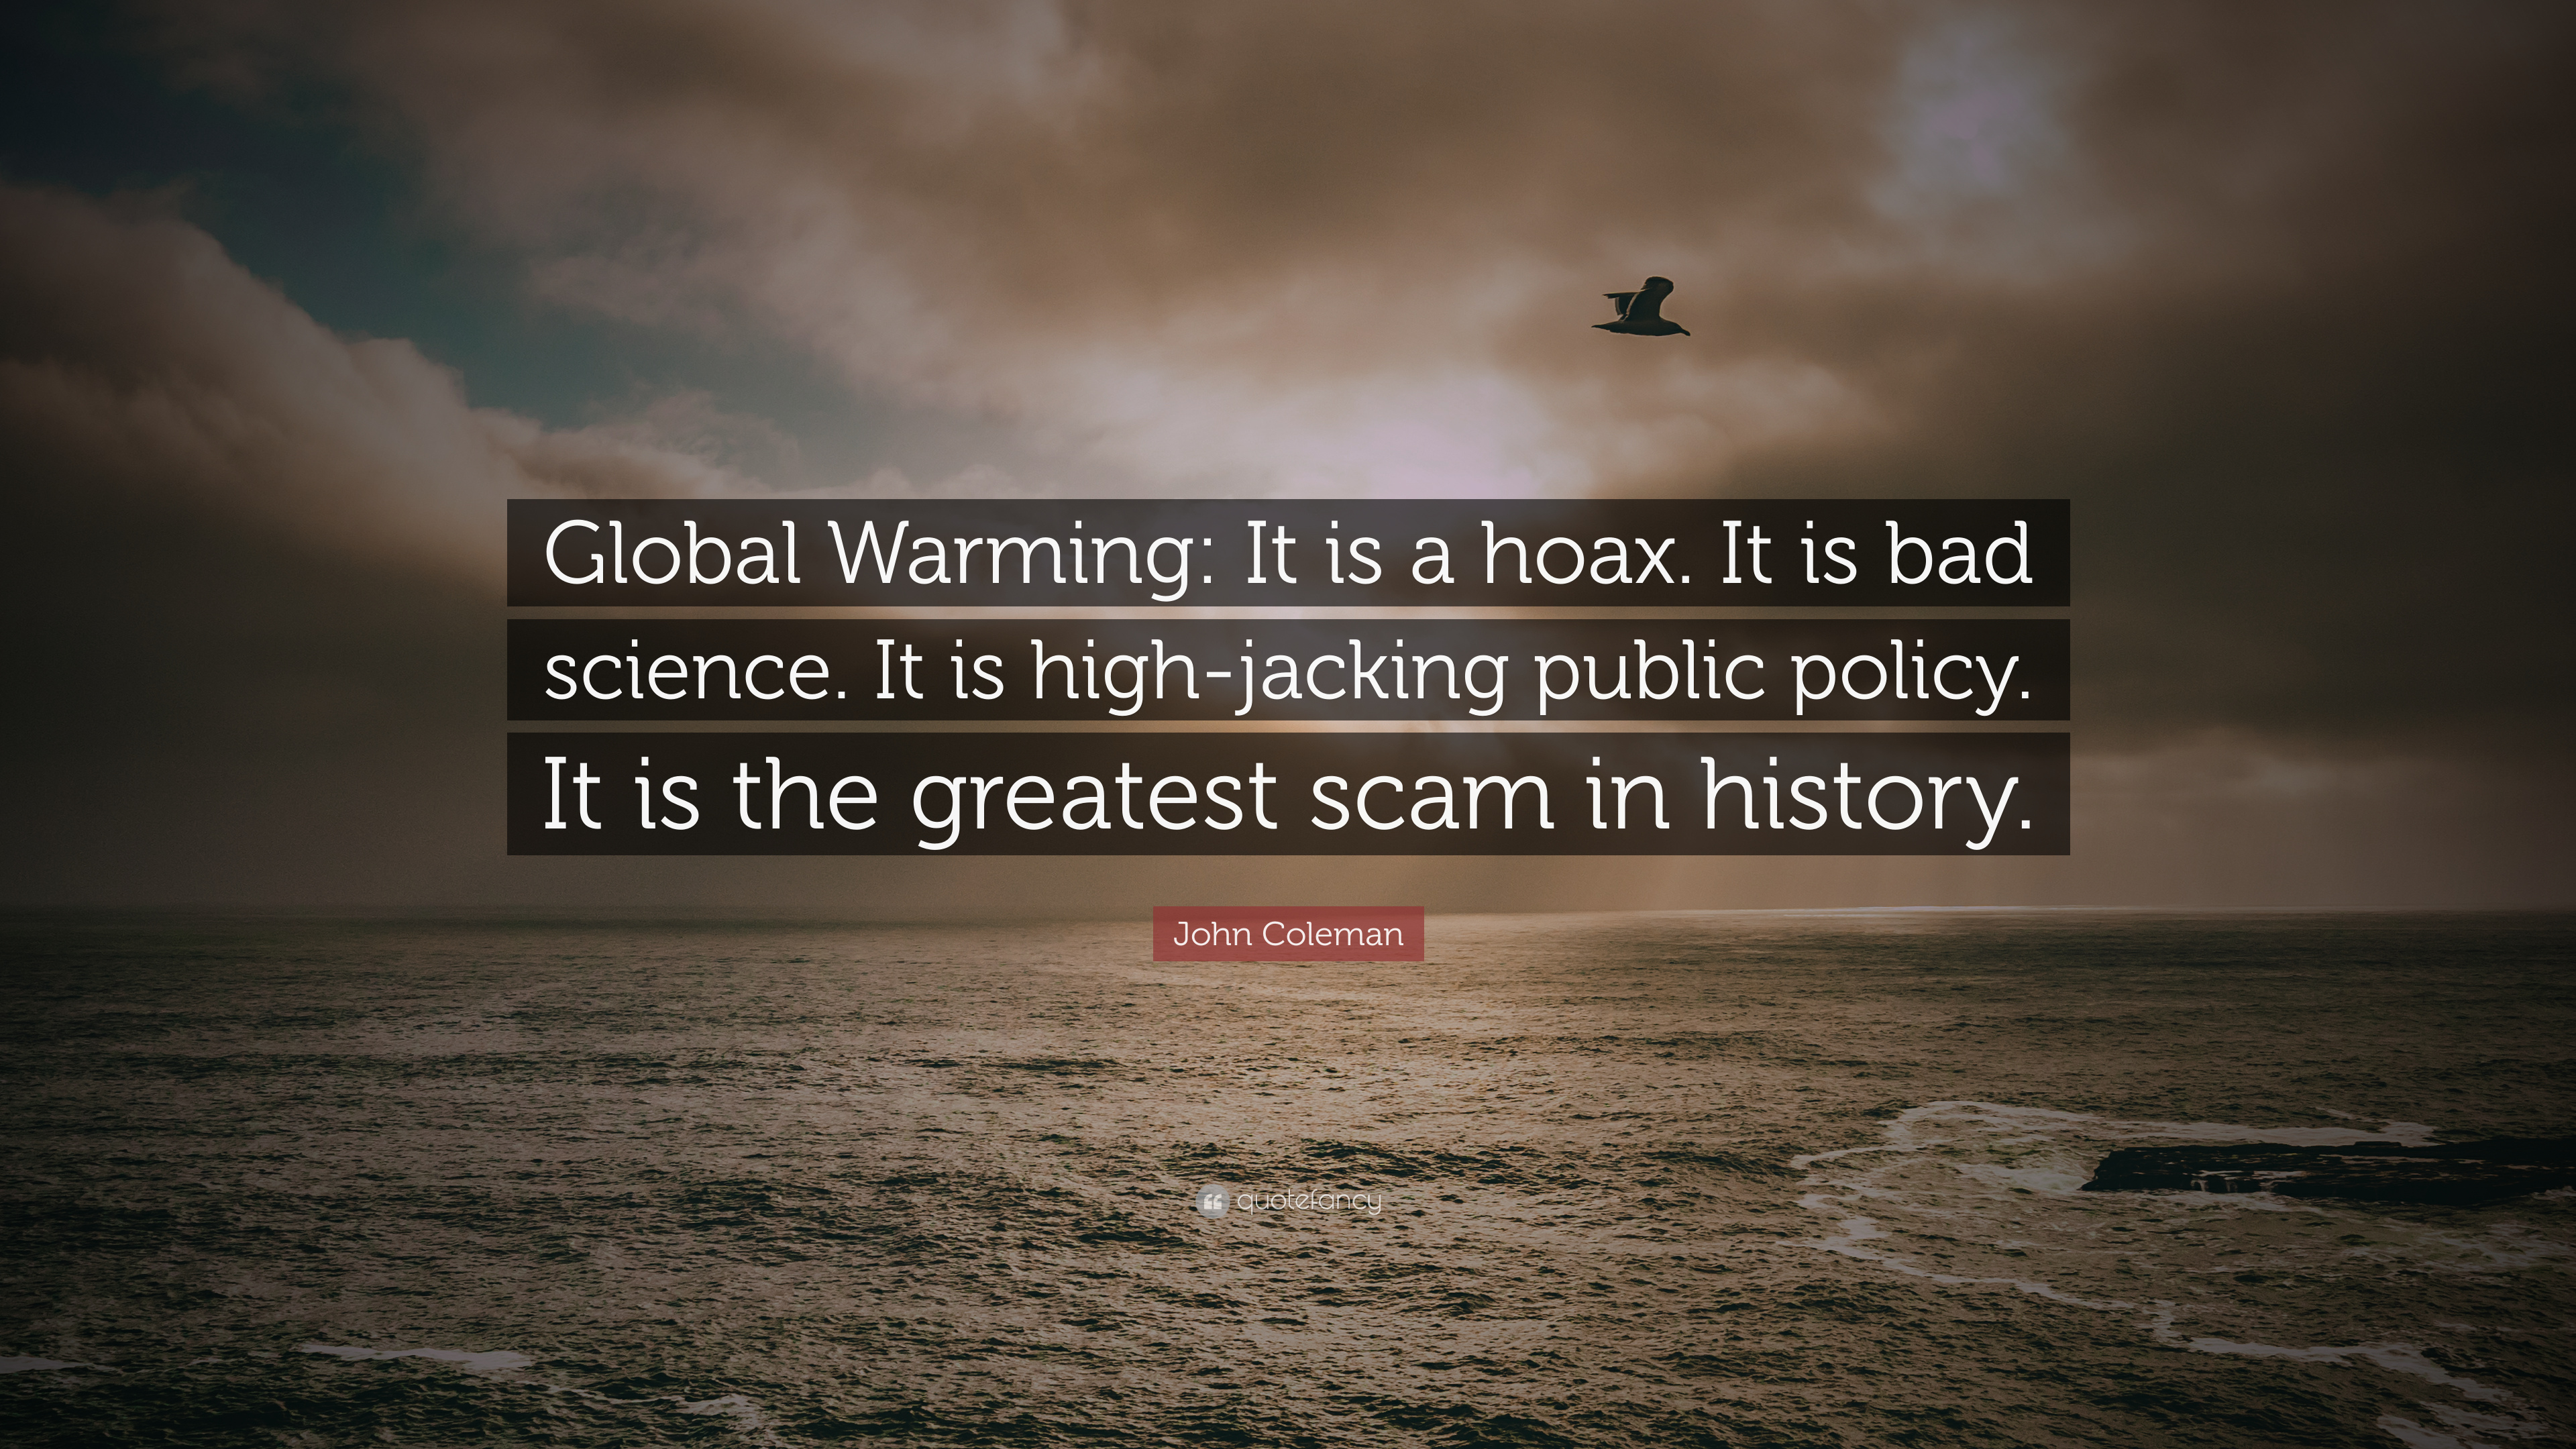 Global Warming Quotes John Coleman Quotes 10 Wallpapers  Quotefancy